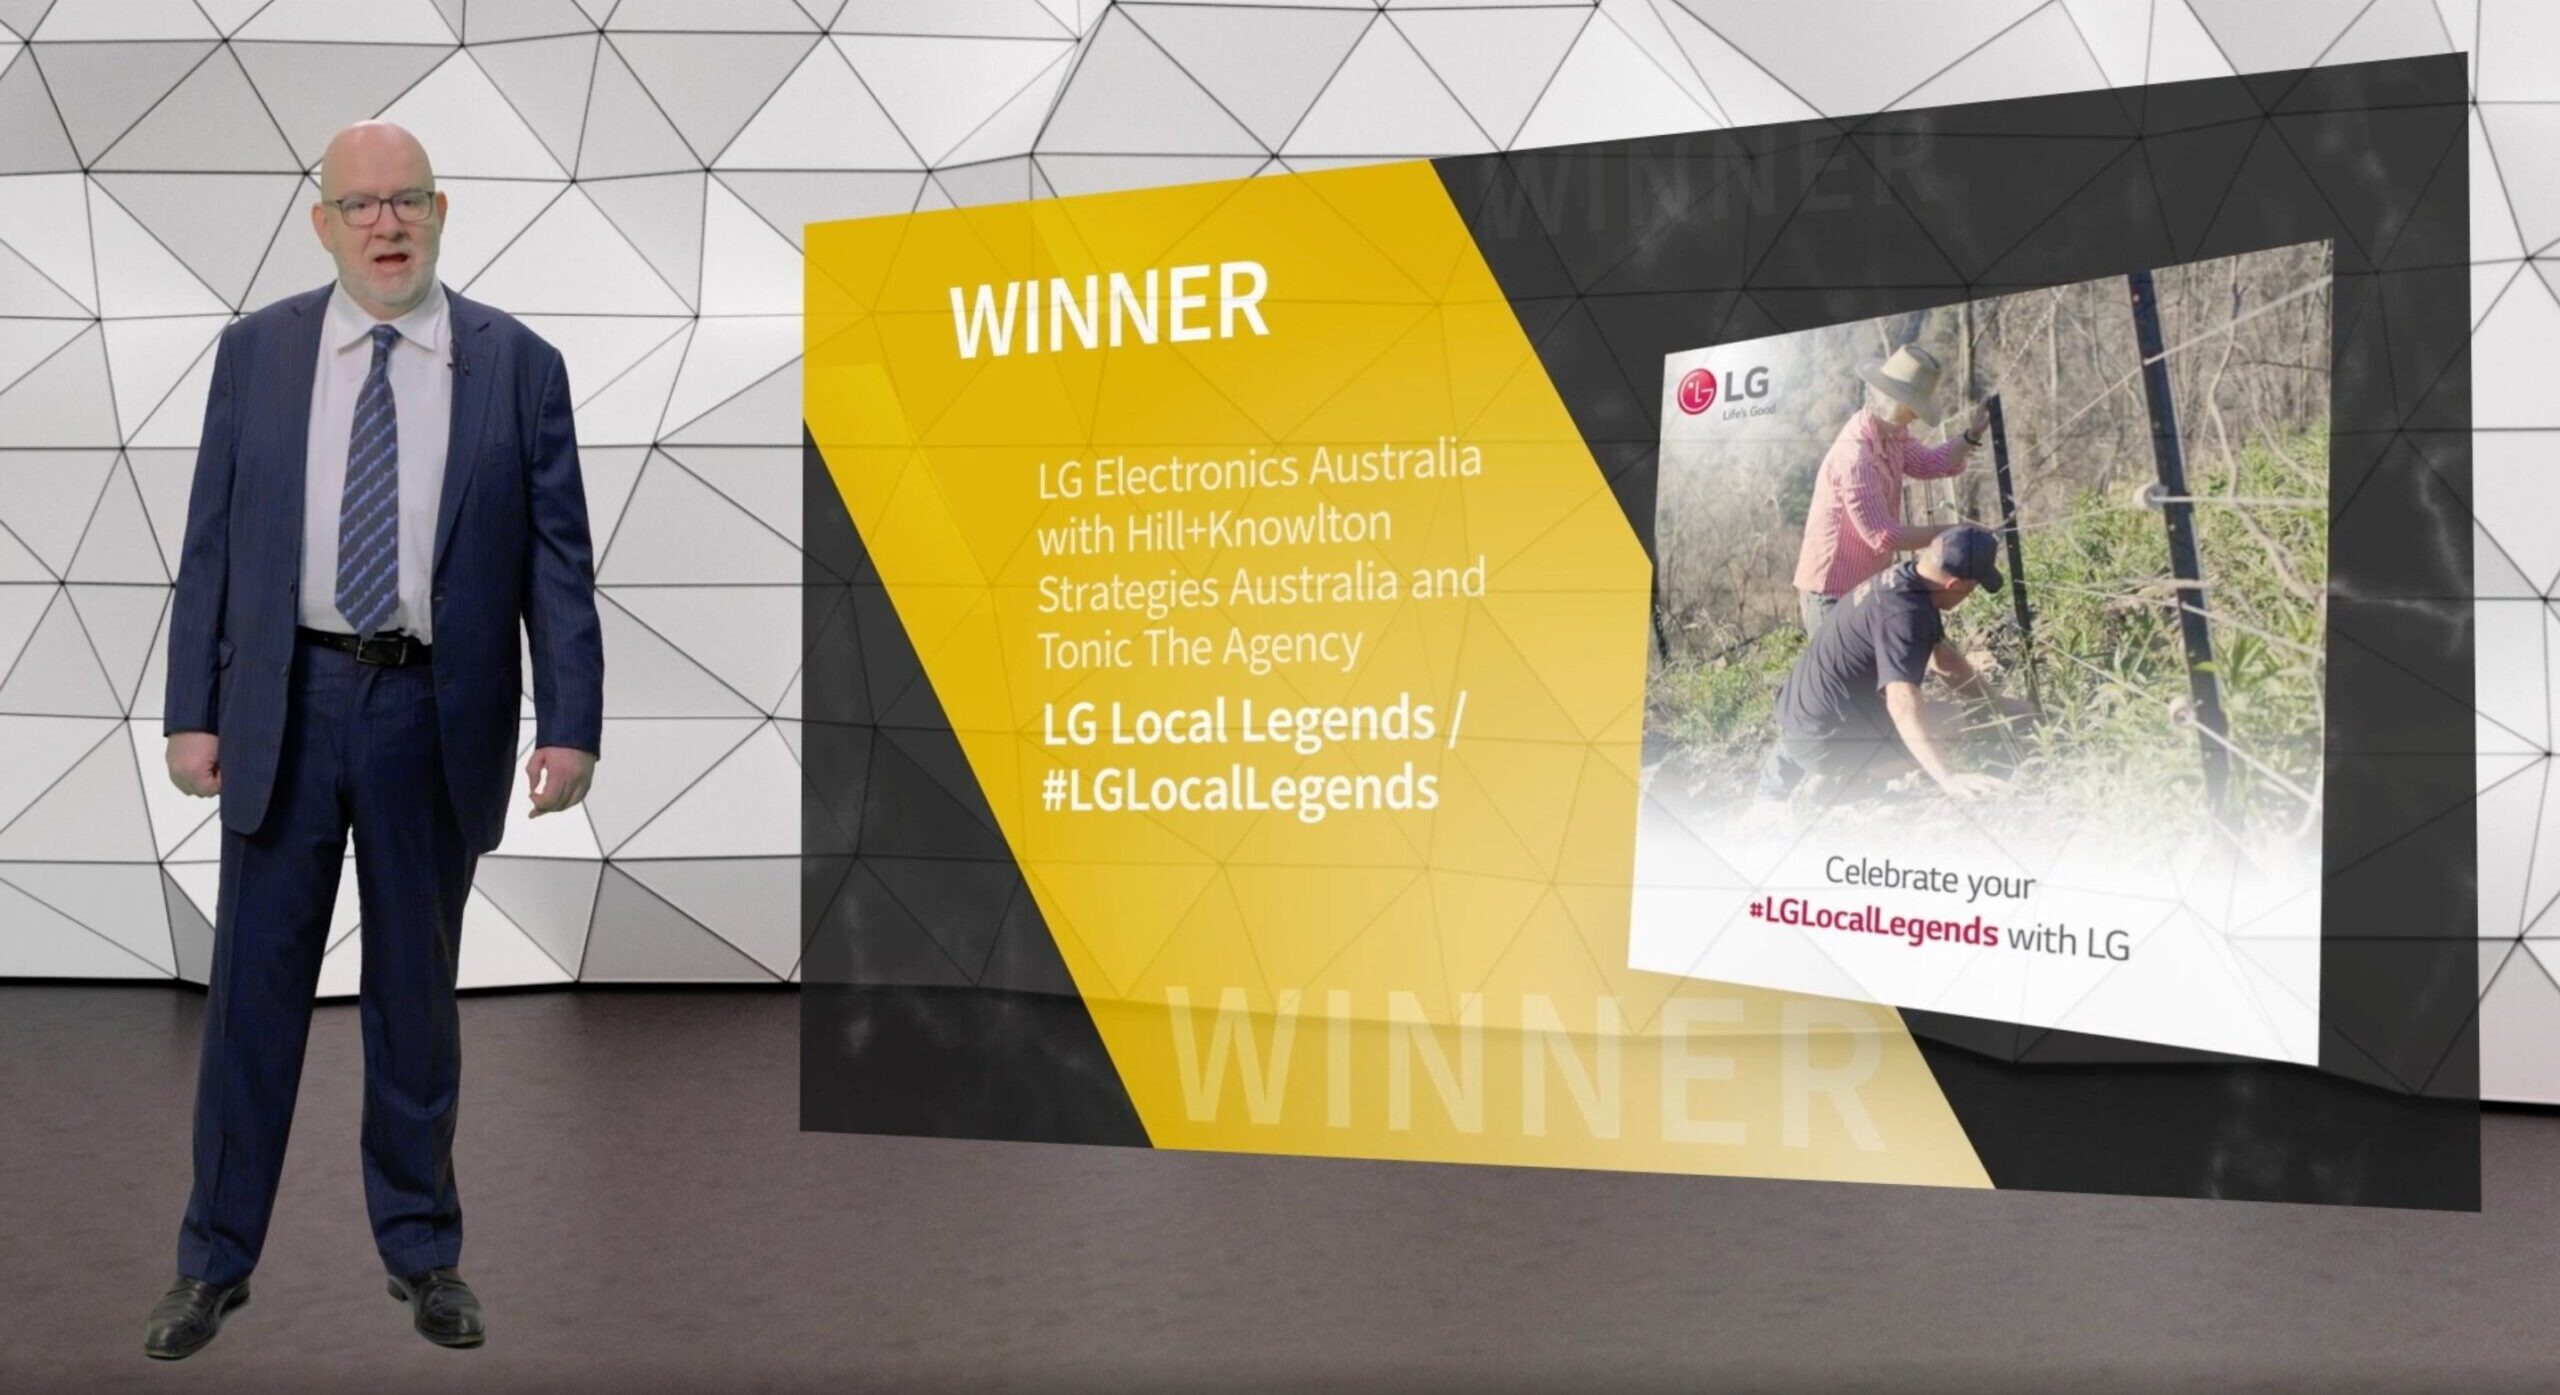 The LG Local Legends program being announced as winner of the Diamond SABRE Award for Superior Achievement in Reputation Management.